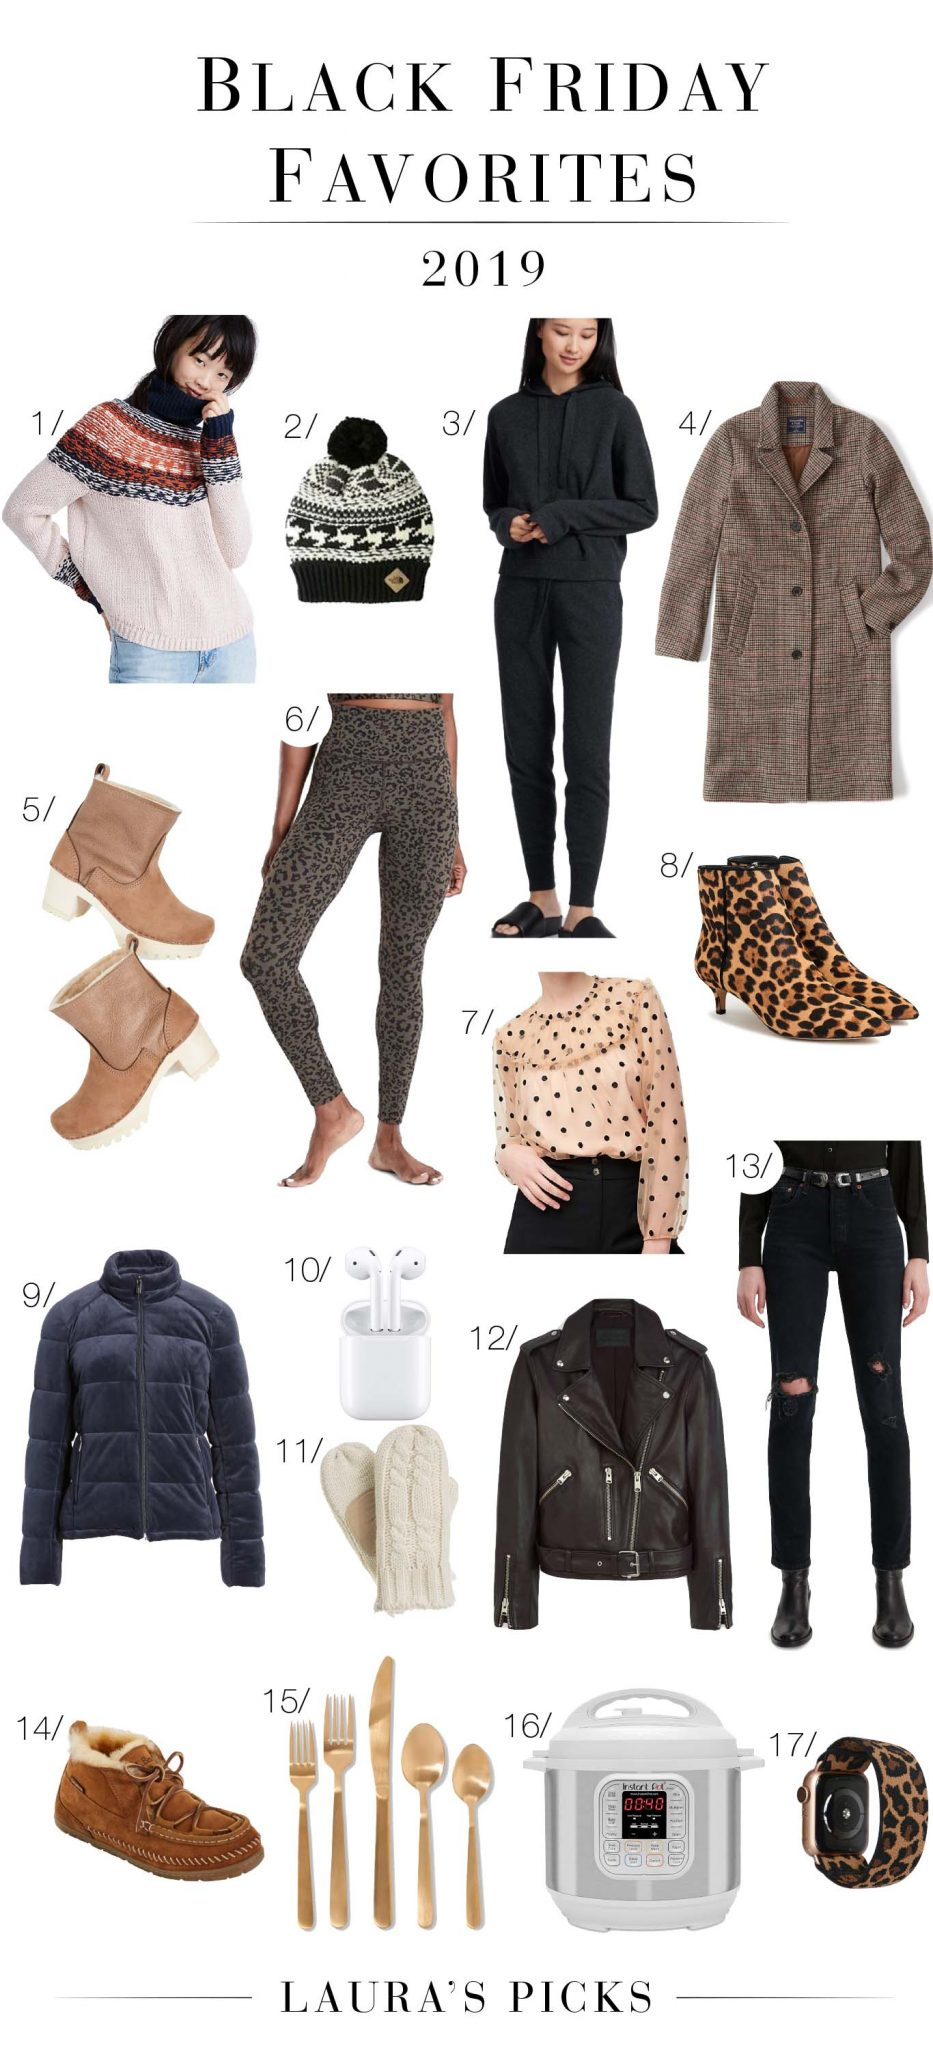 My fashion & home shopping list for Black Friday/Cyber Monday sales reads a little bit city a little bit cabin & that's pretty much me to a T. Shop it here.